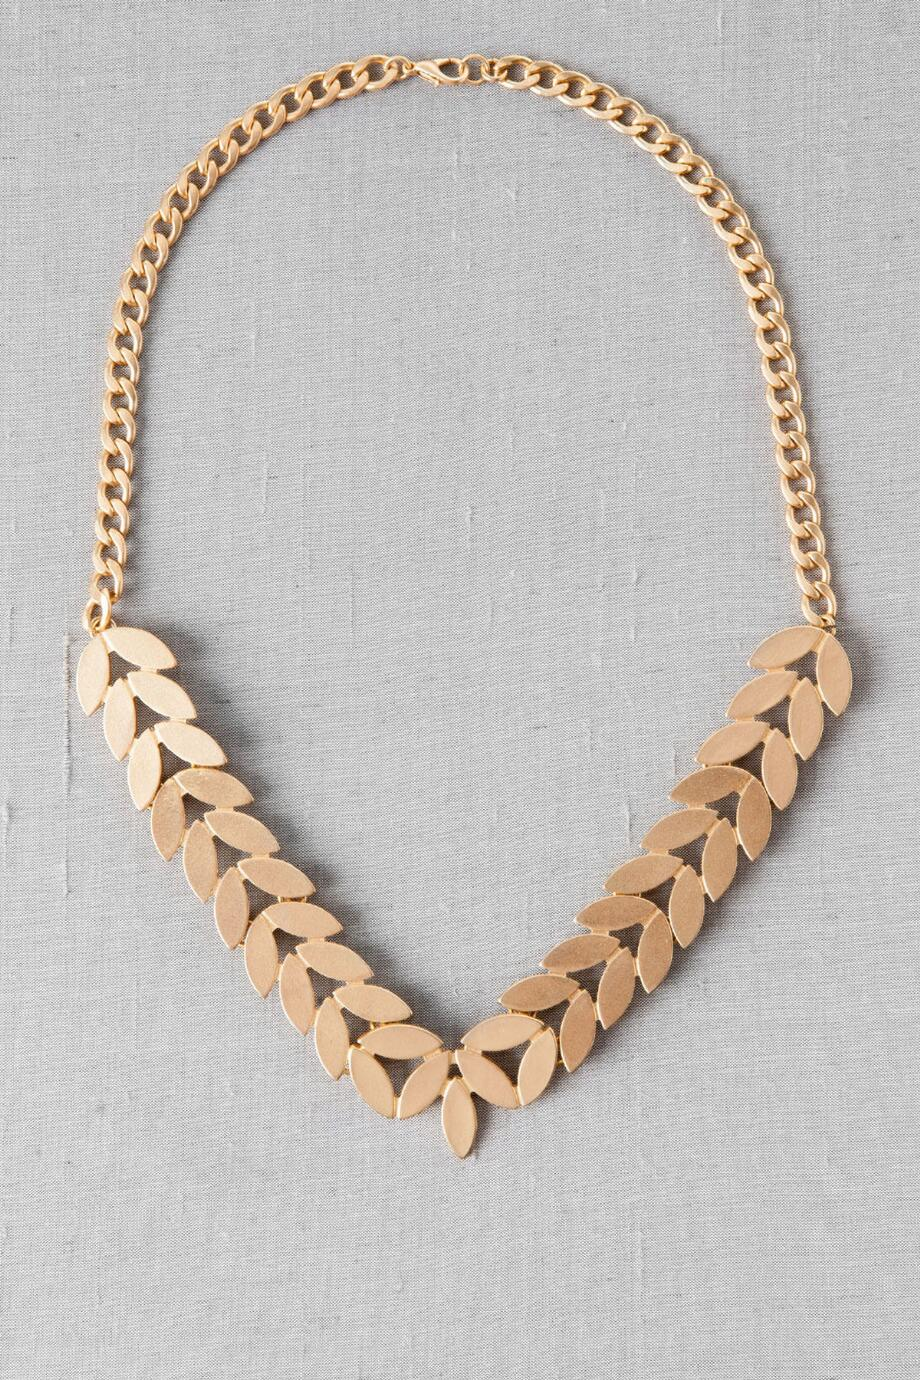 Athens Leaf Necklace